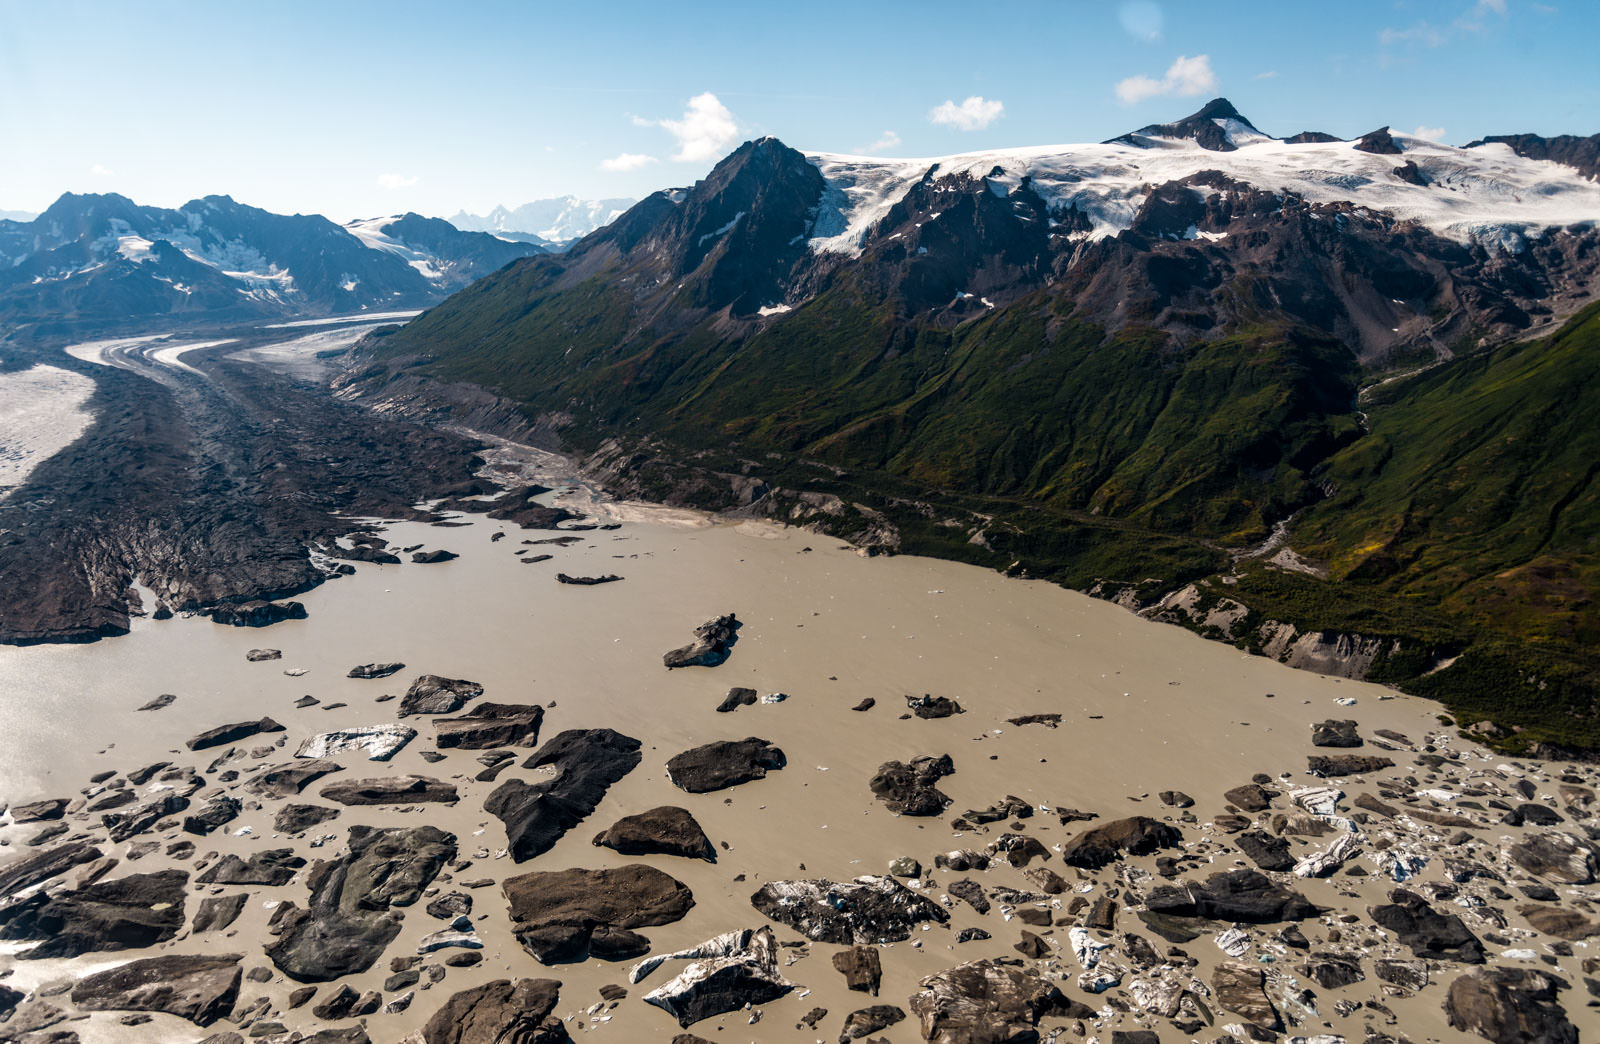 Bagley Icefield - University Range Tour: Iceburgs in Tana Lake